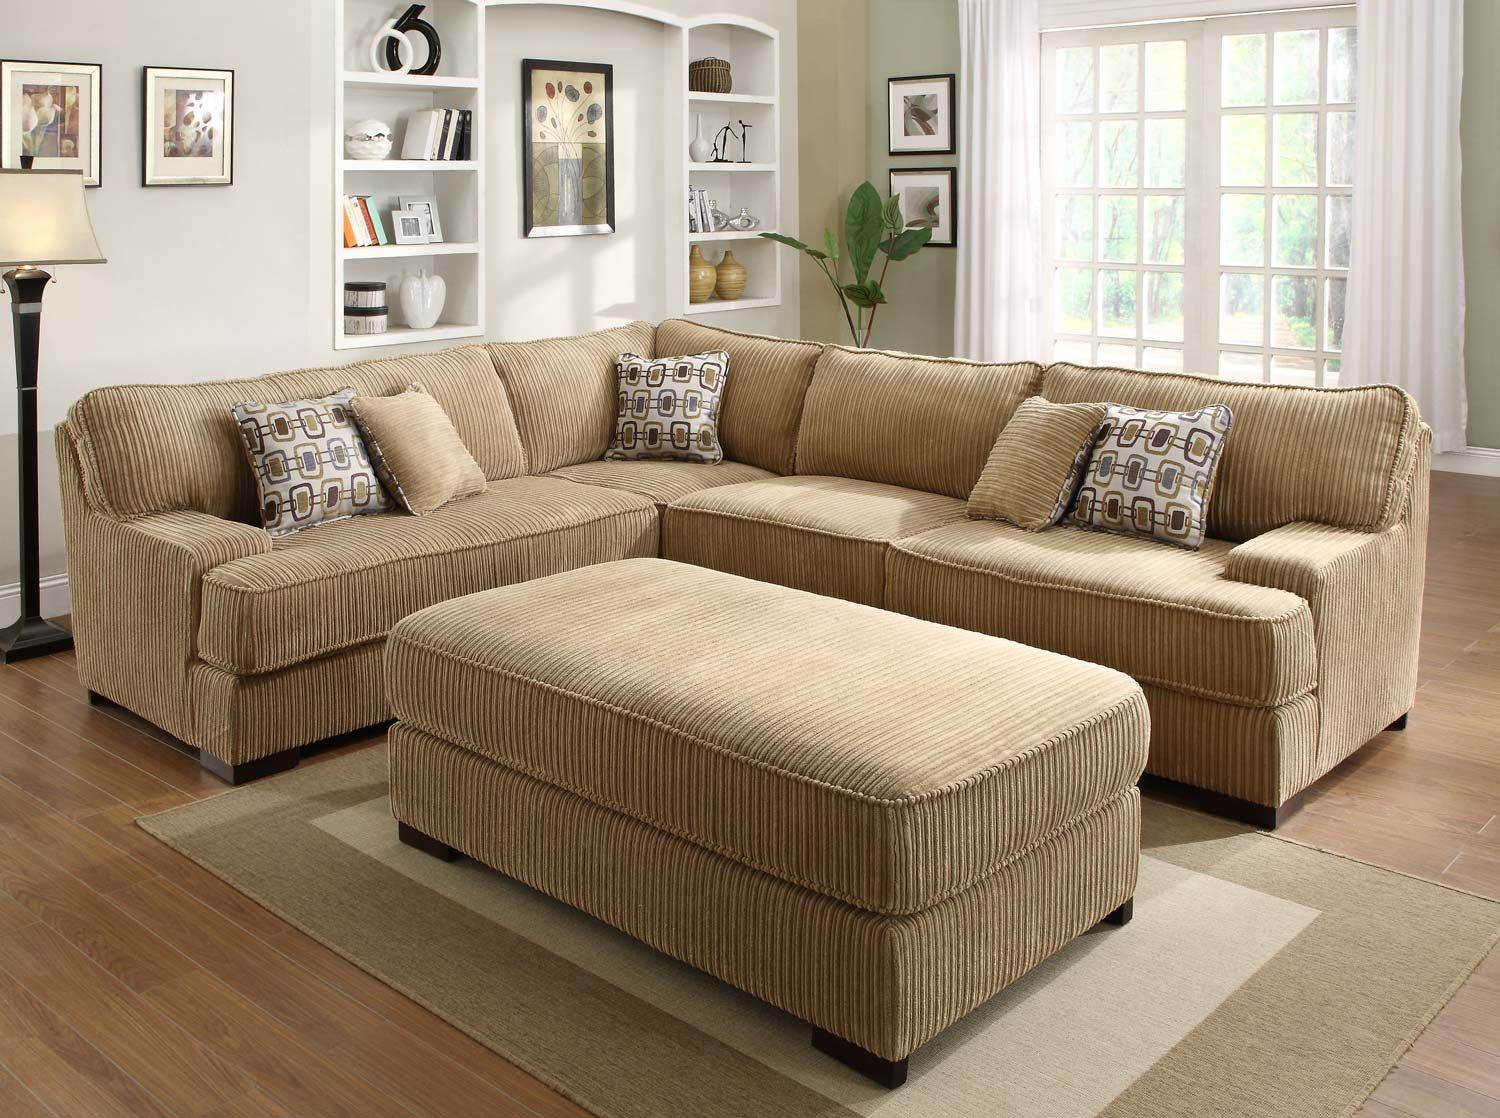 beautiful brown sectional sofas photo-Modern Brown Sectional sofas Wallpaper